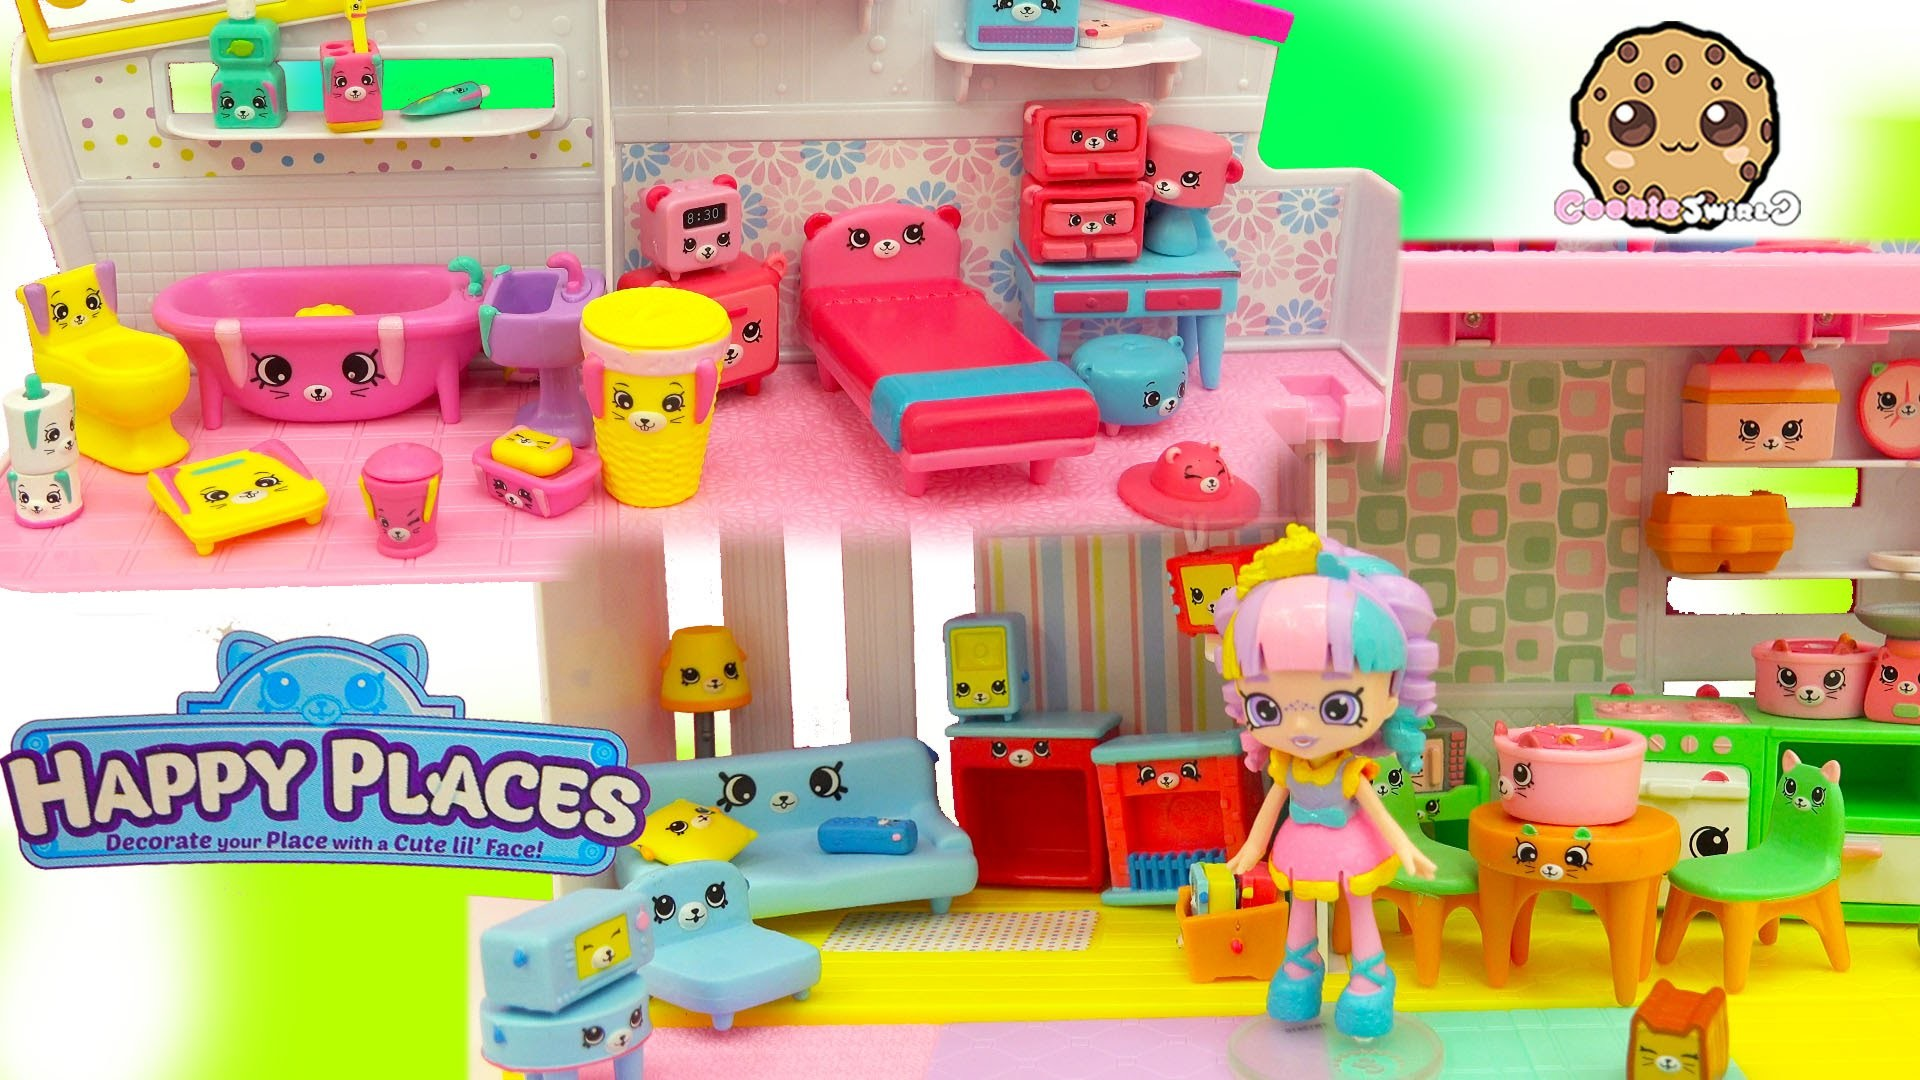 All 4 Shopkins Petkins Decorator's Packs with Blind Bags In Rainbow Kate's  Happy Places Home – YouTube